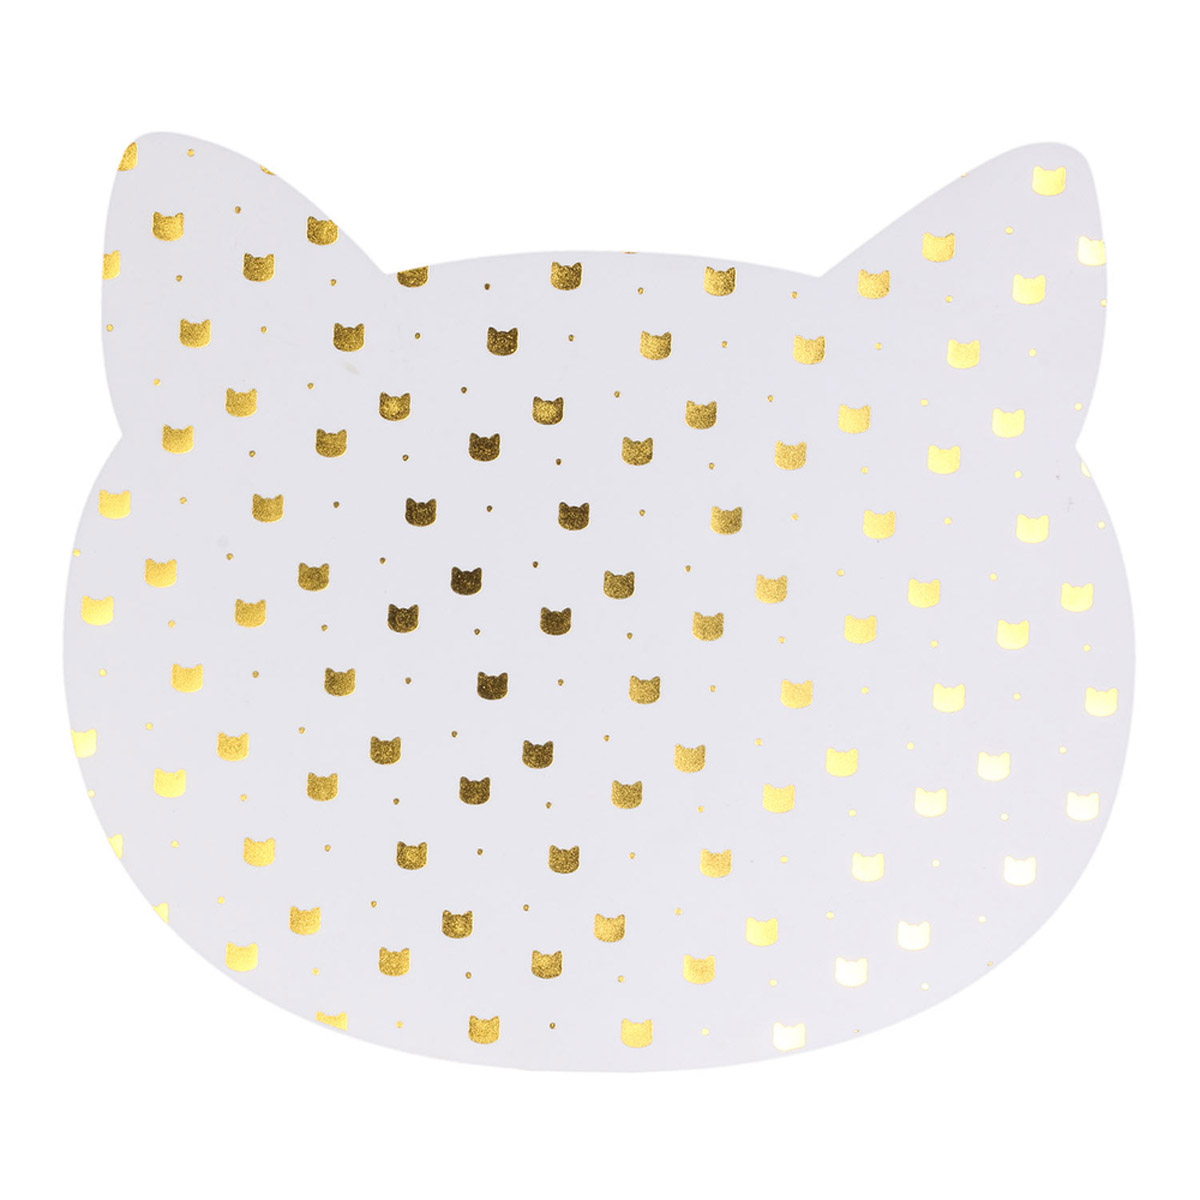 Set de table \'Les Chats\' blanc doré - 38x33 cm - [R2515]